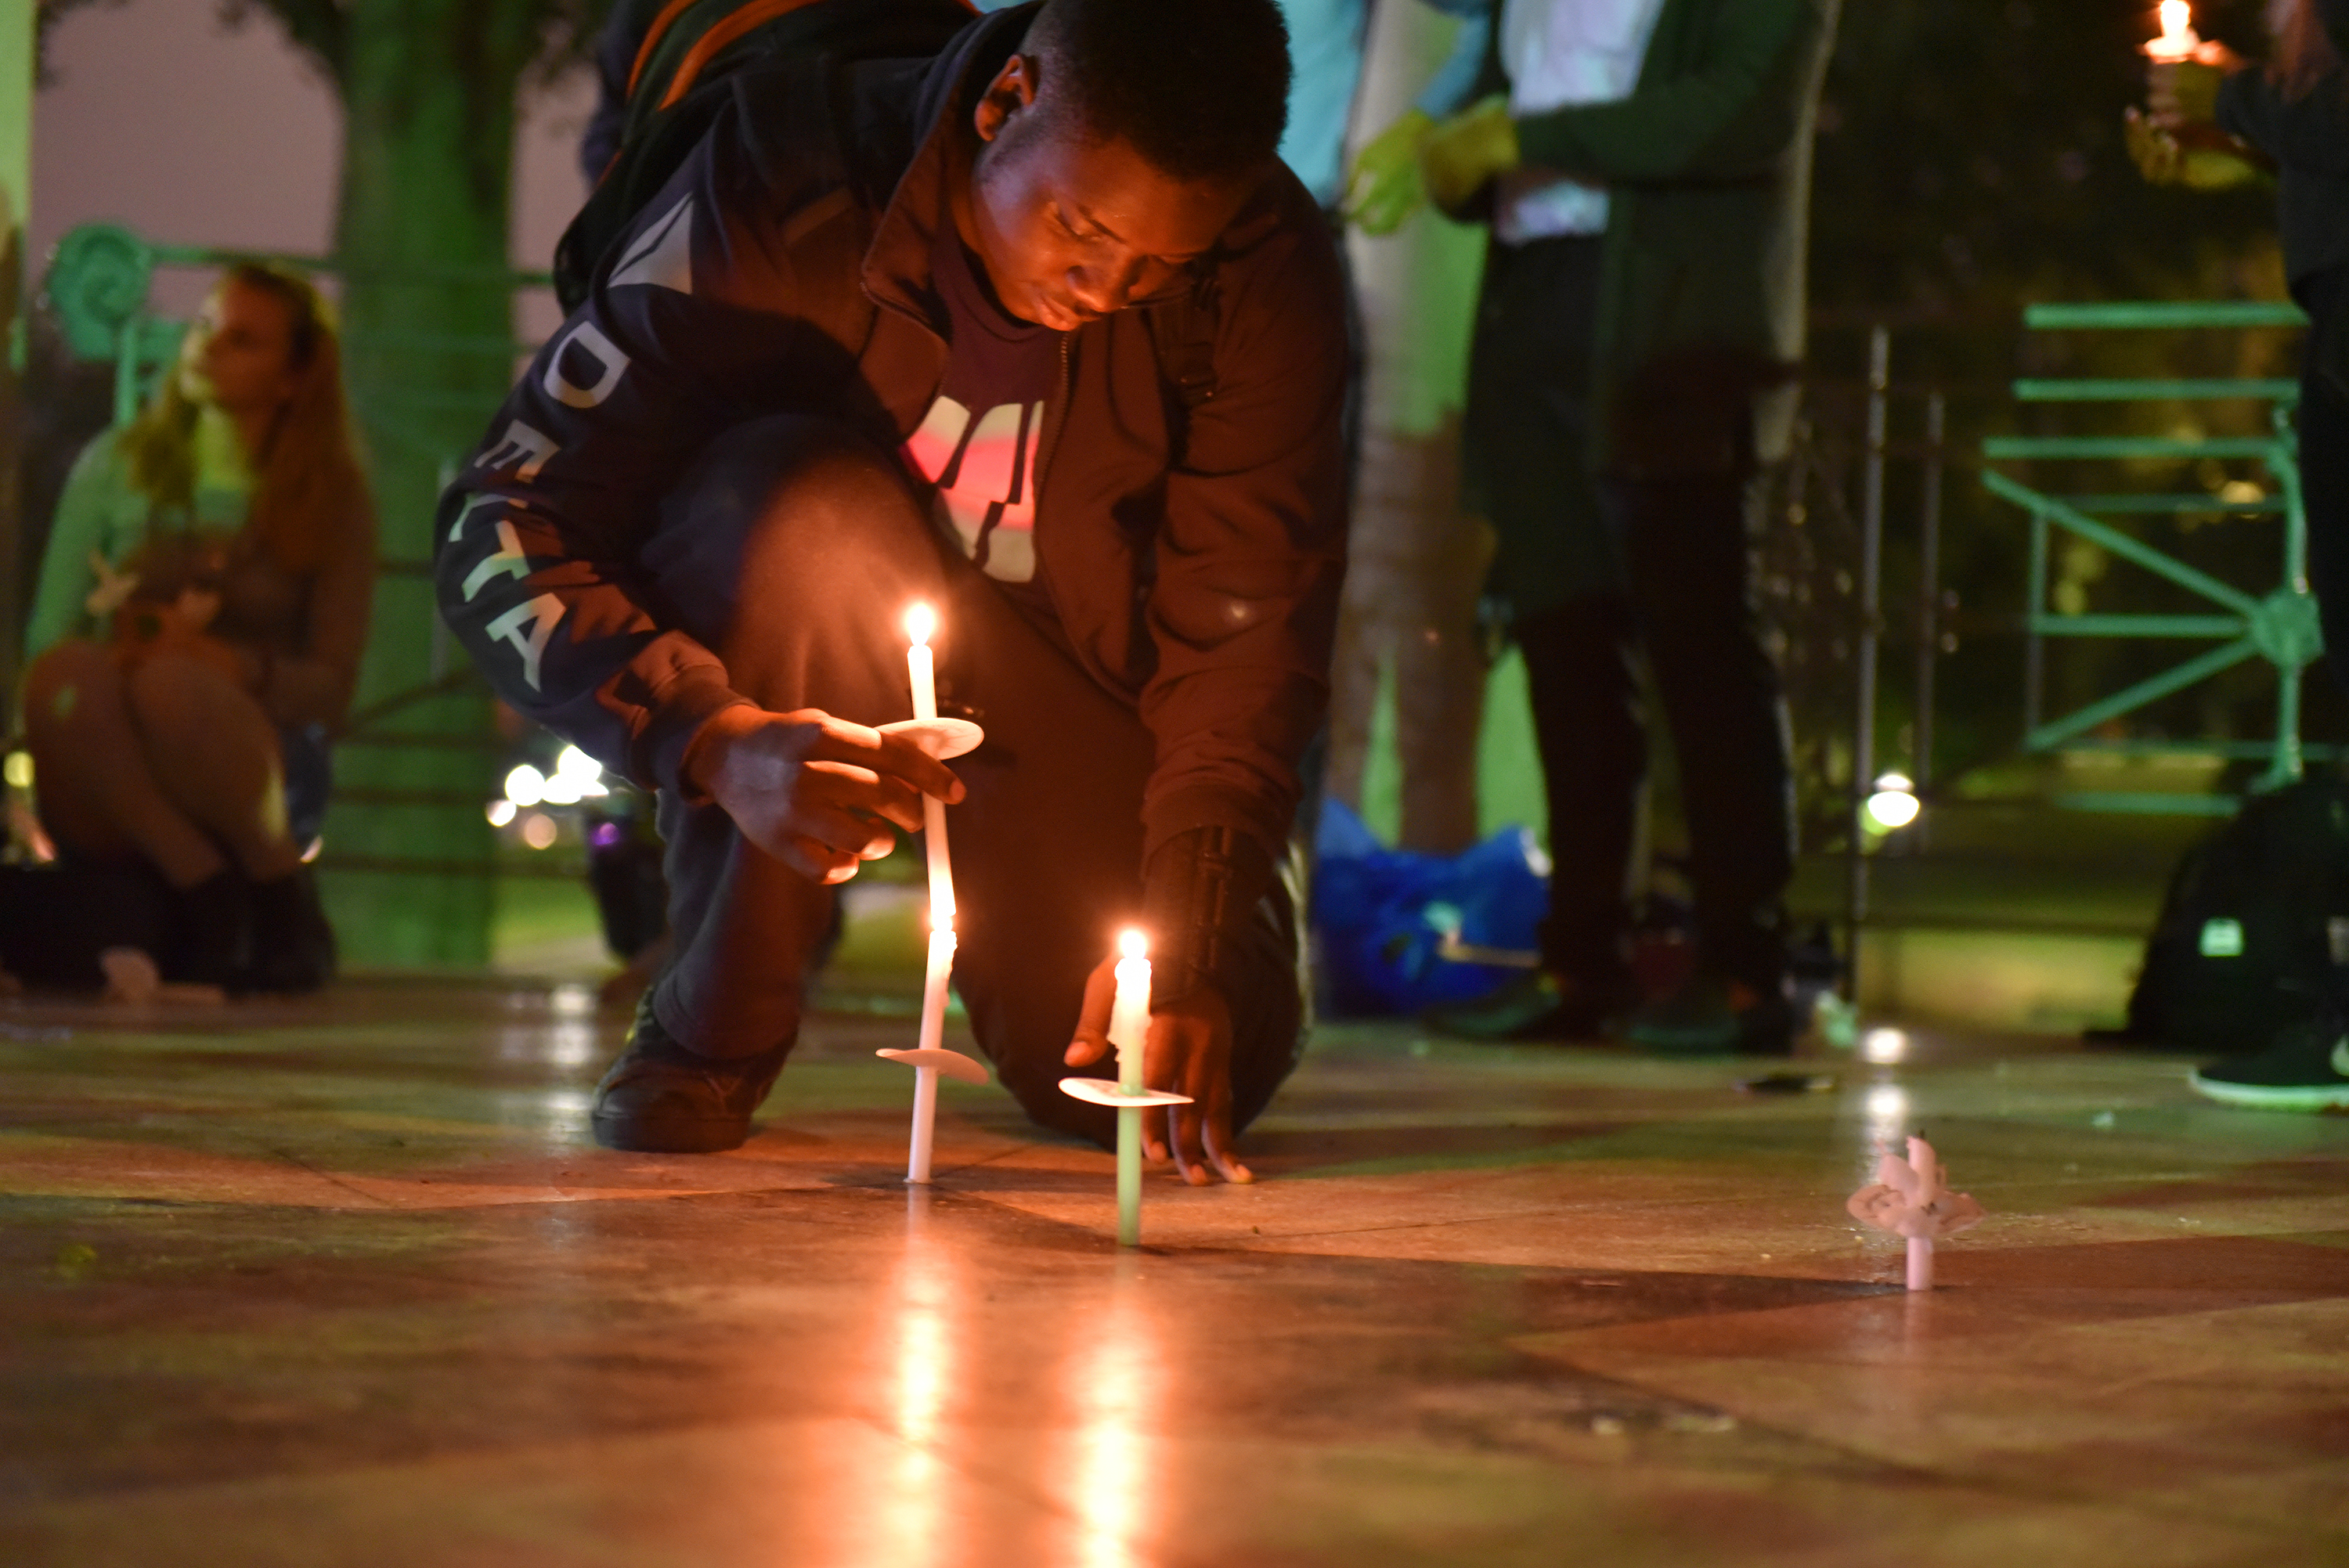 Student lights candle